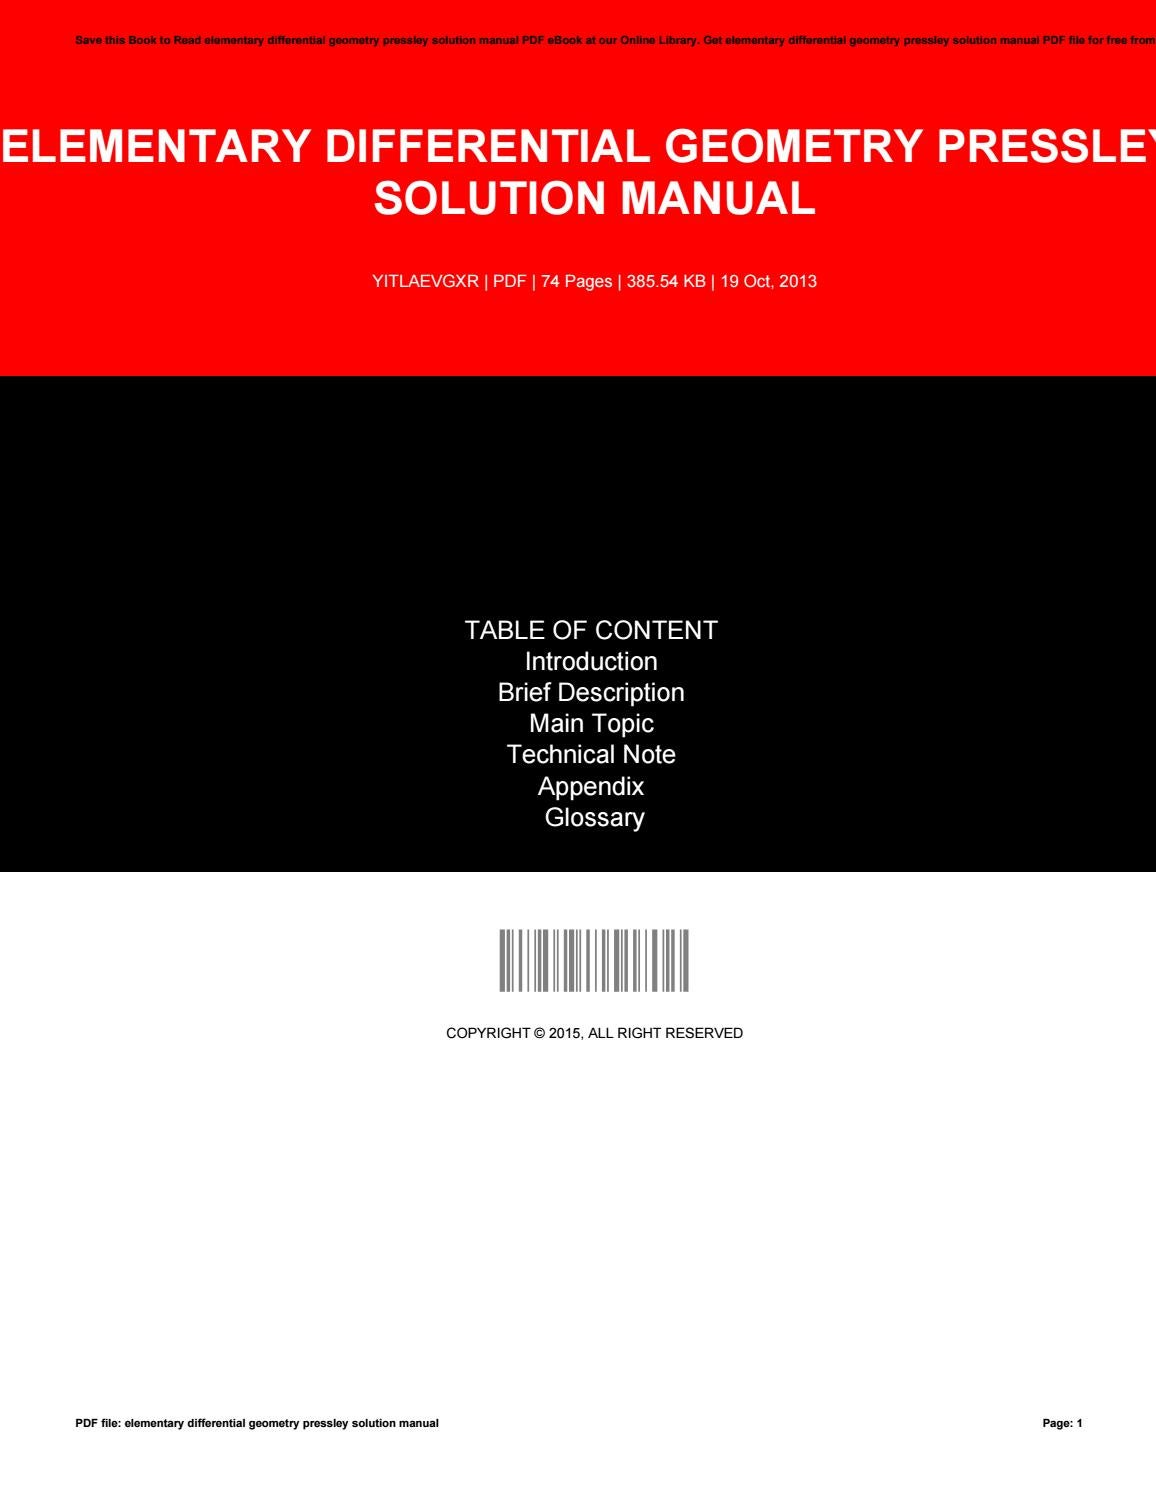 Elementary differential geometry pressley solution manual by  JoelBradshaw2583 - issuu